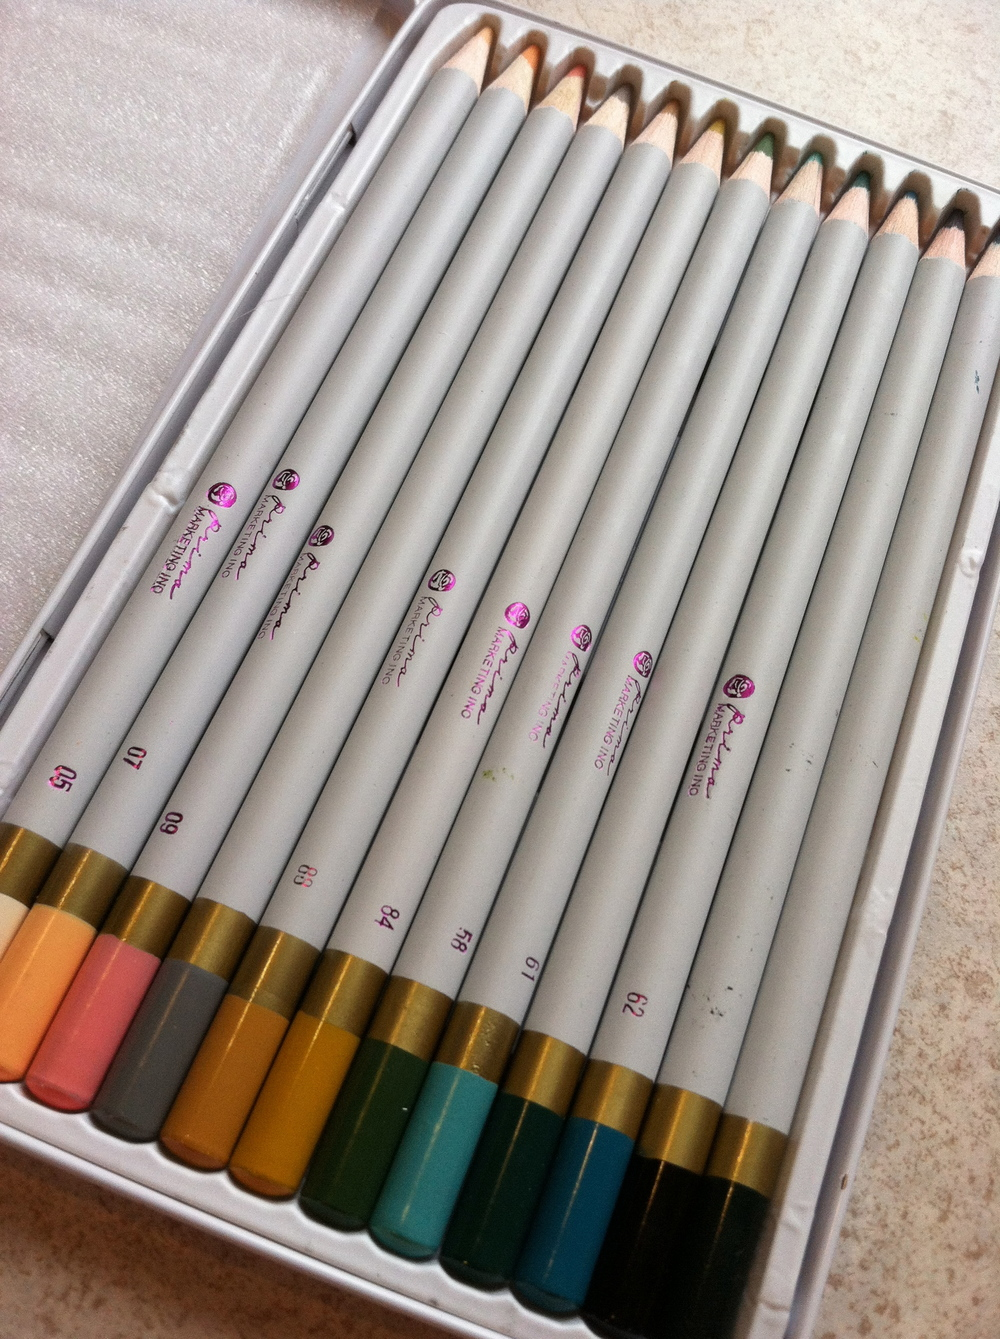 Water Color Pencils - In stock now